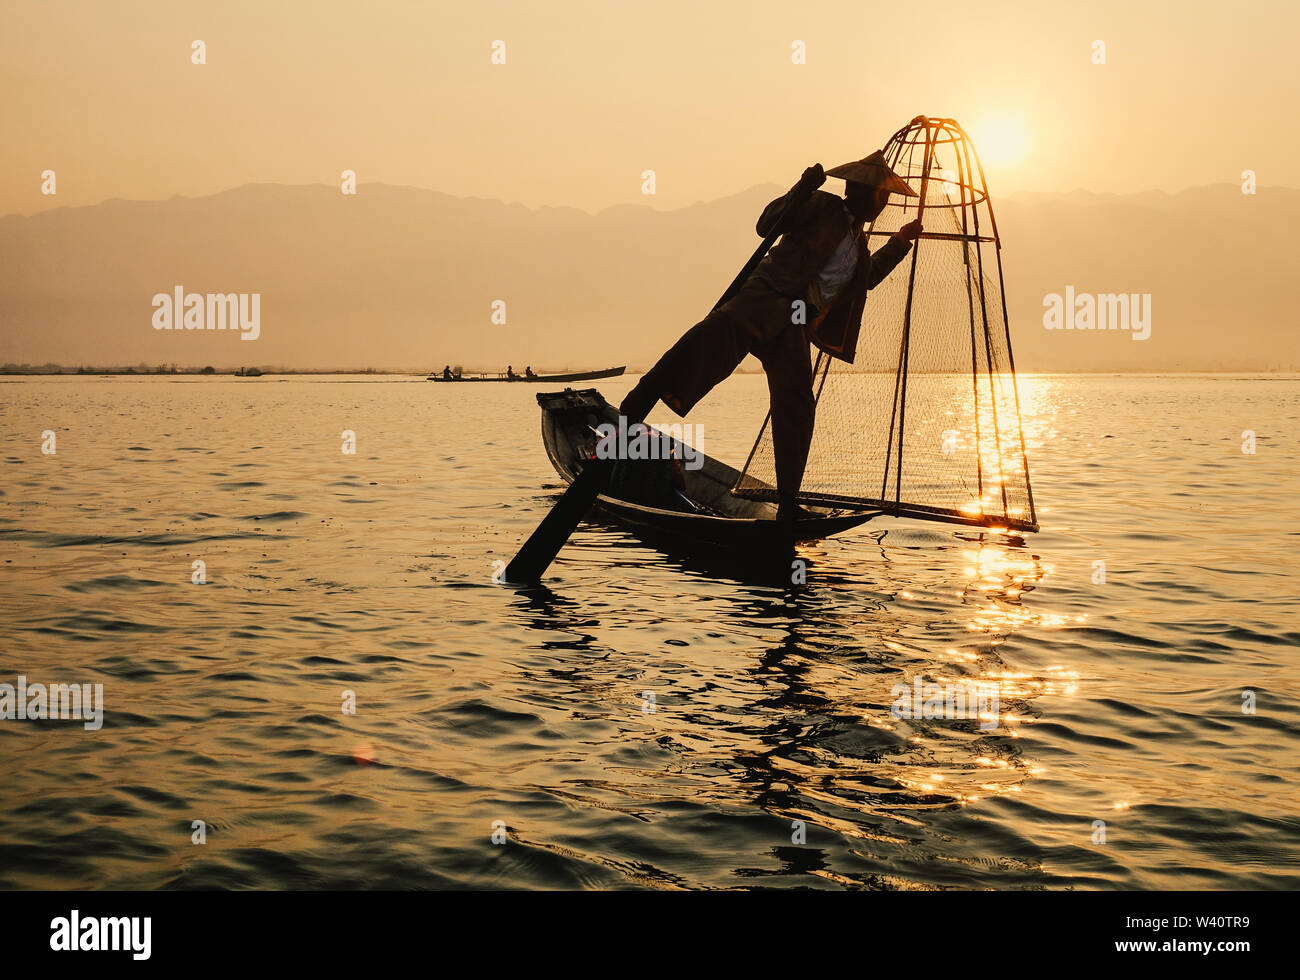 Inle Lake, Myanmar - Feb 16, 2016. Intha man using the unique methods of rowing and catching fish on Inle Lake (Shan State). - Stock Image